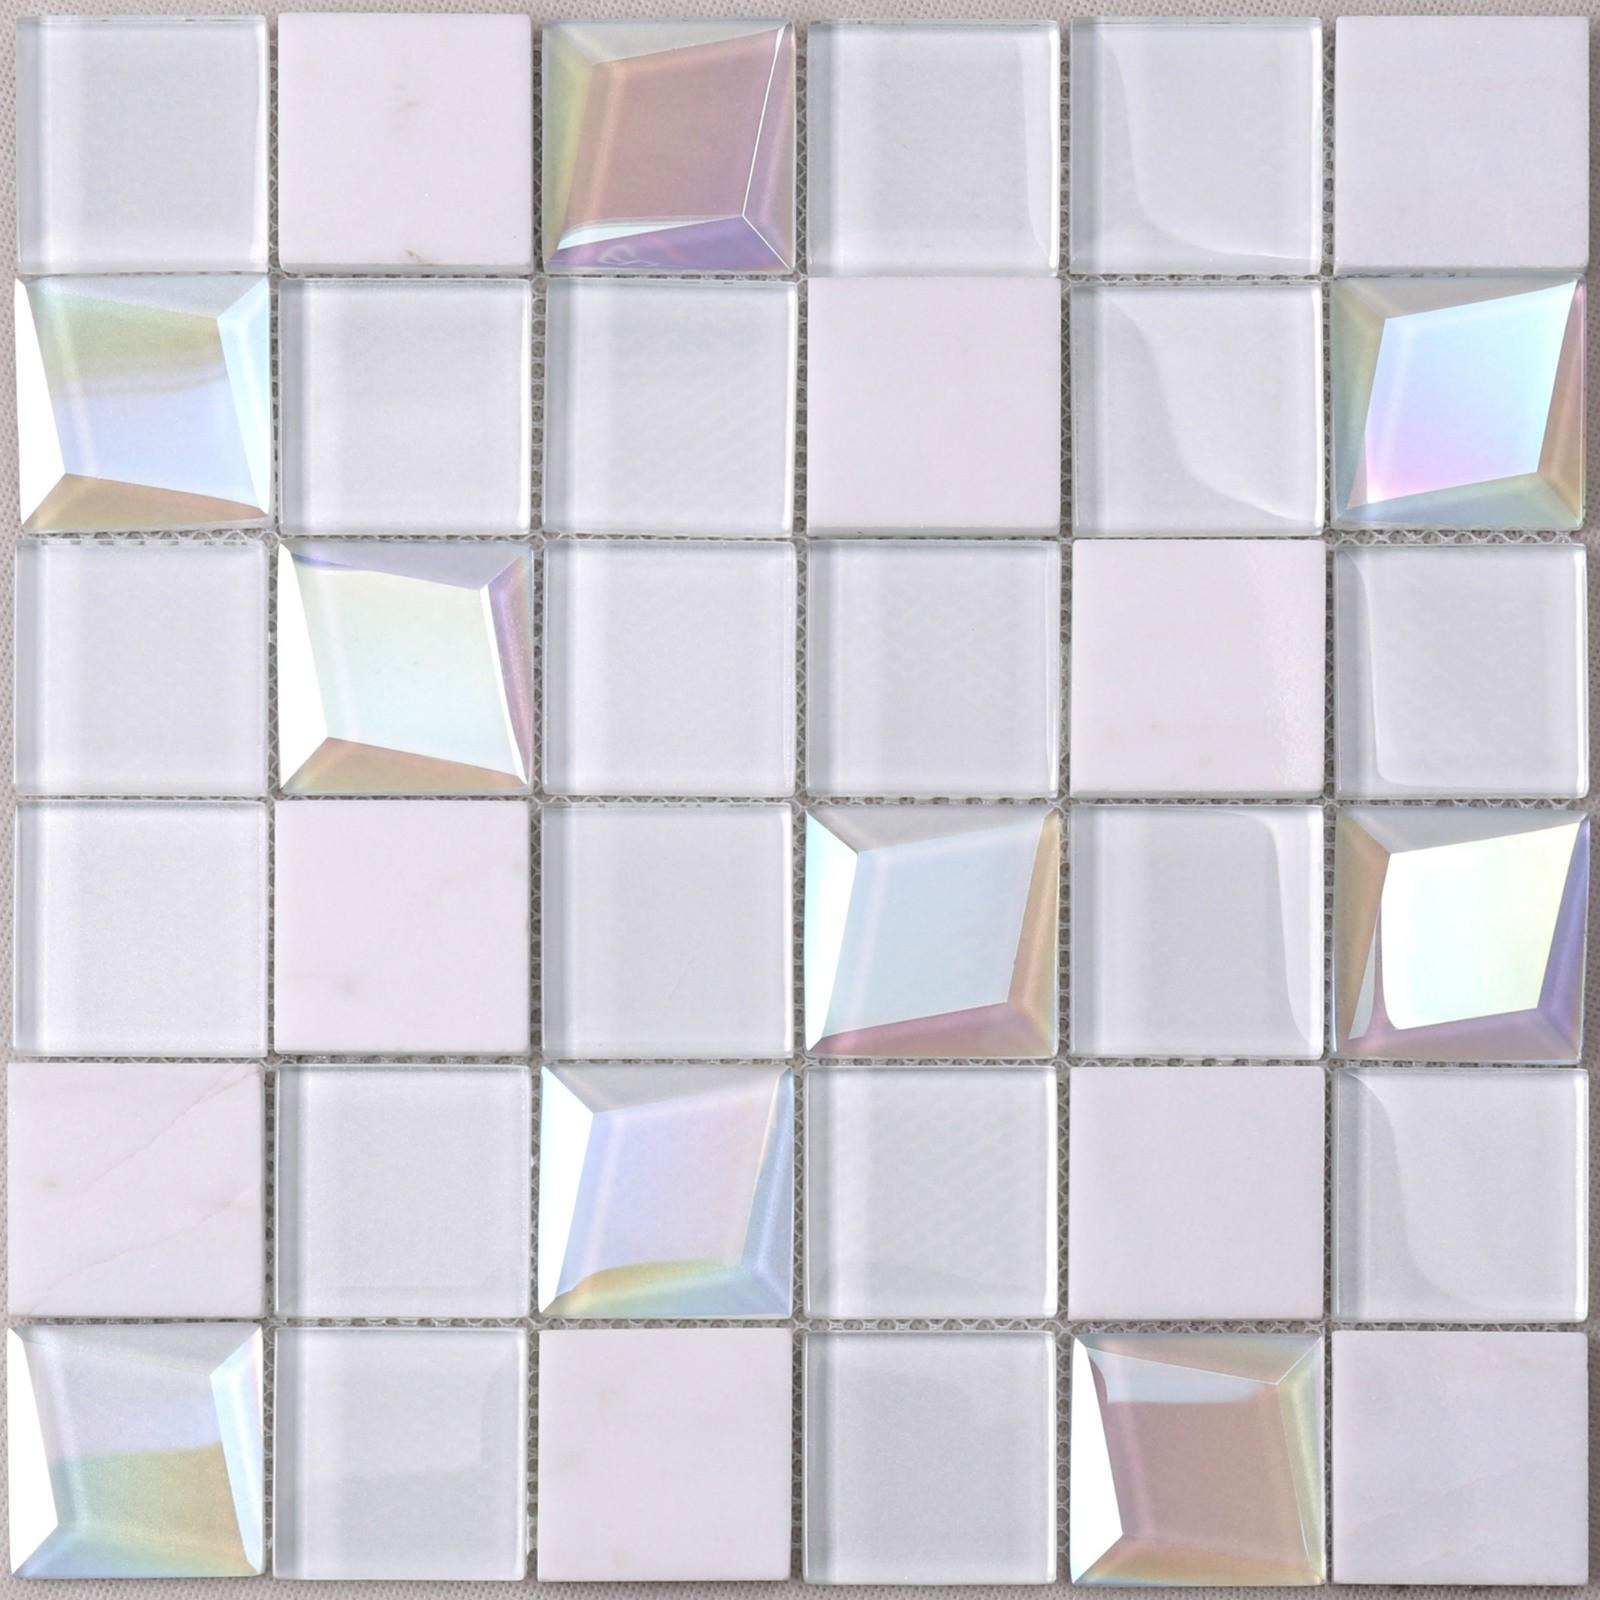 Heng Xing interlock tile outlet michigan factory price for bathroom